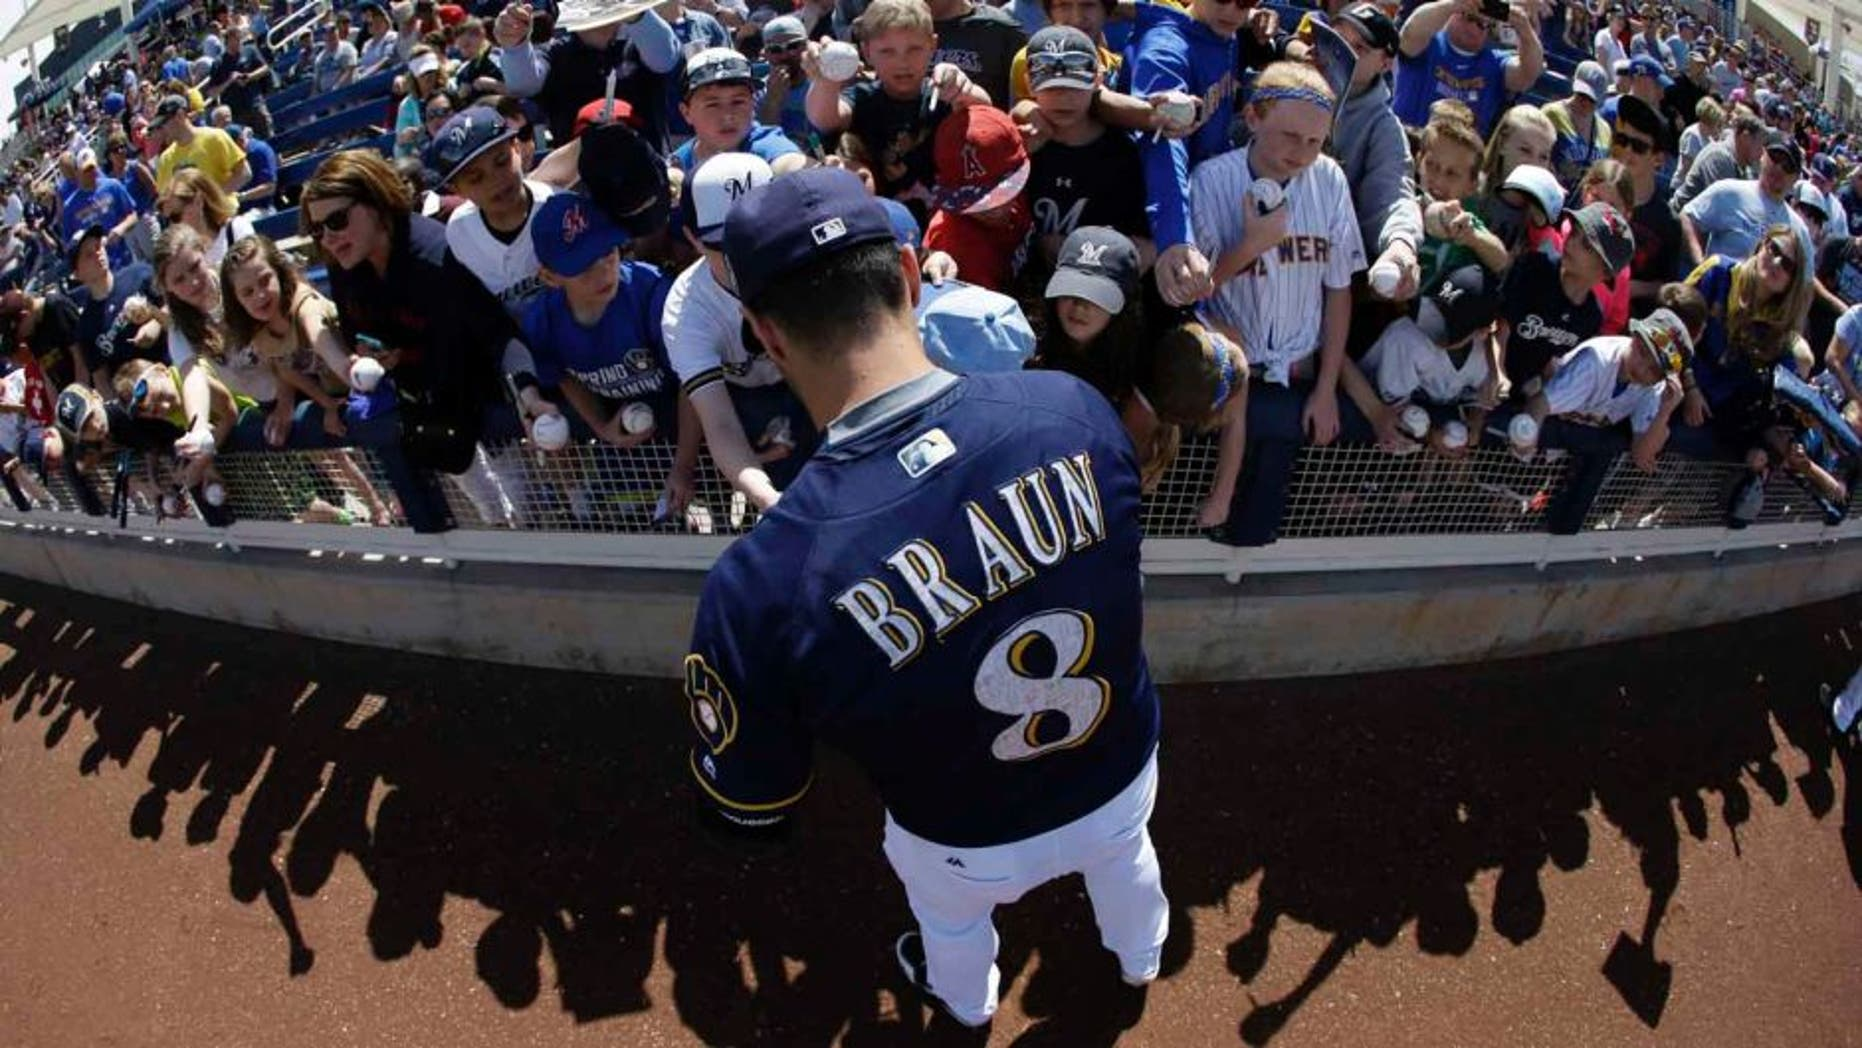 Tuesday, March 29: In this image taken with a fisheye lens, the Milwaukee Brewers' Ryan Braun signs autographs for fans before a spring training game against the Cincinnati Reds in Phoenix.